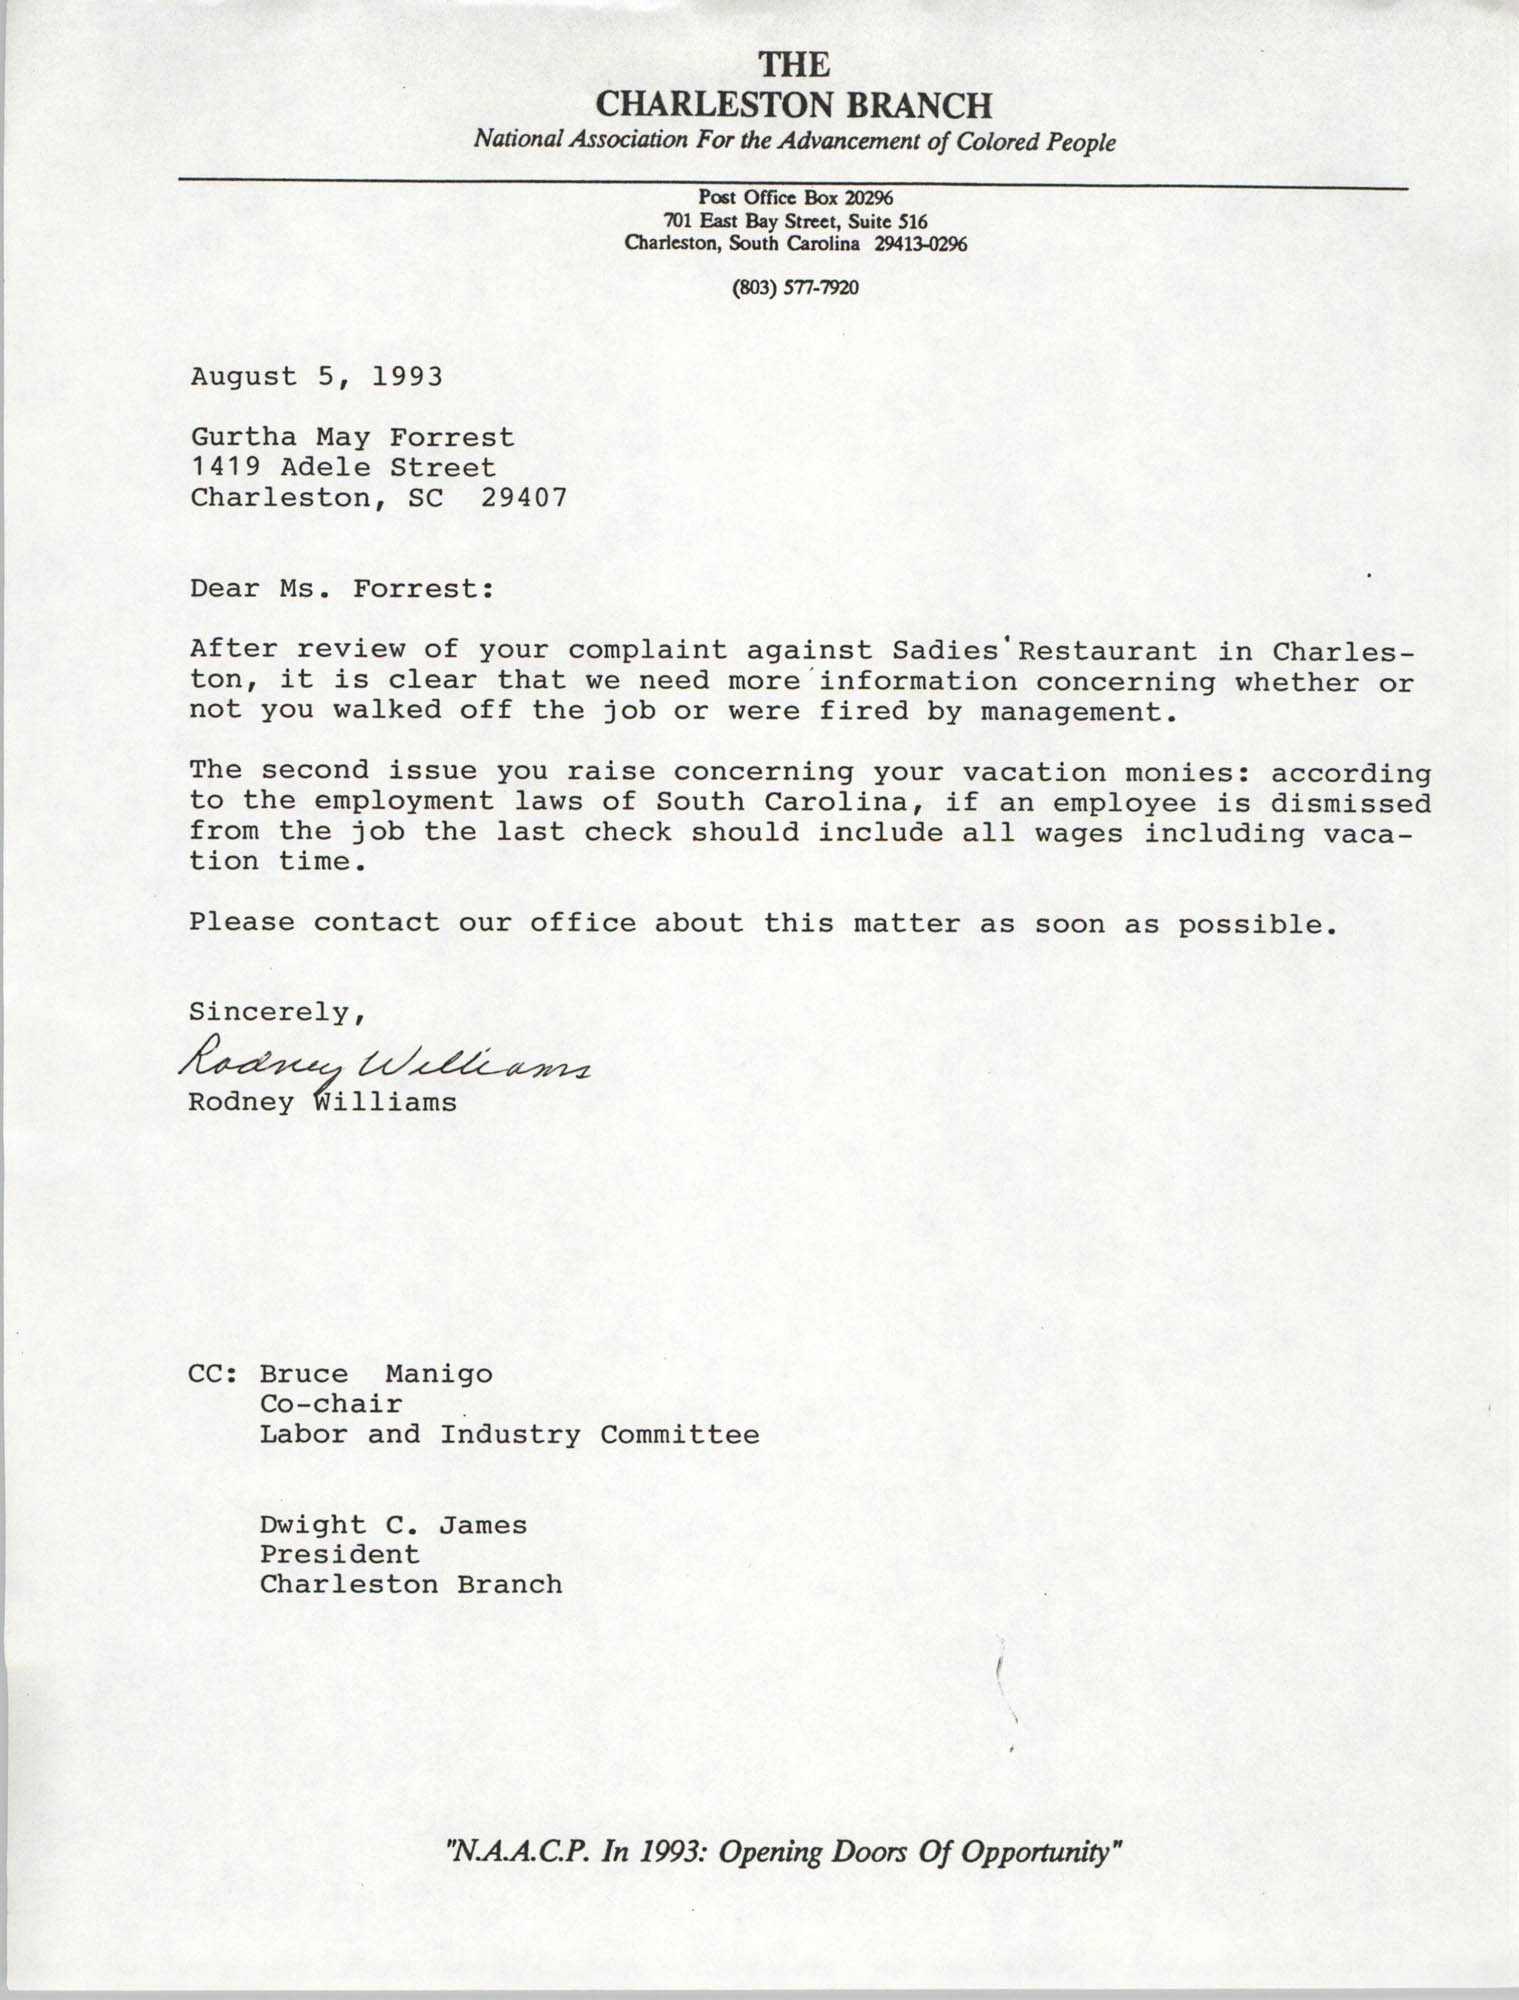 Letter from Rodney Williams to Gurtha May Forrest, August 5, 1993